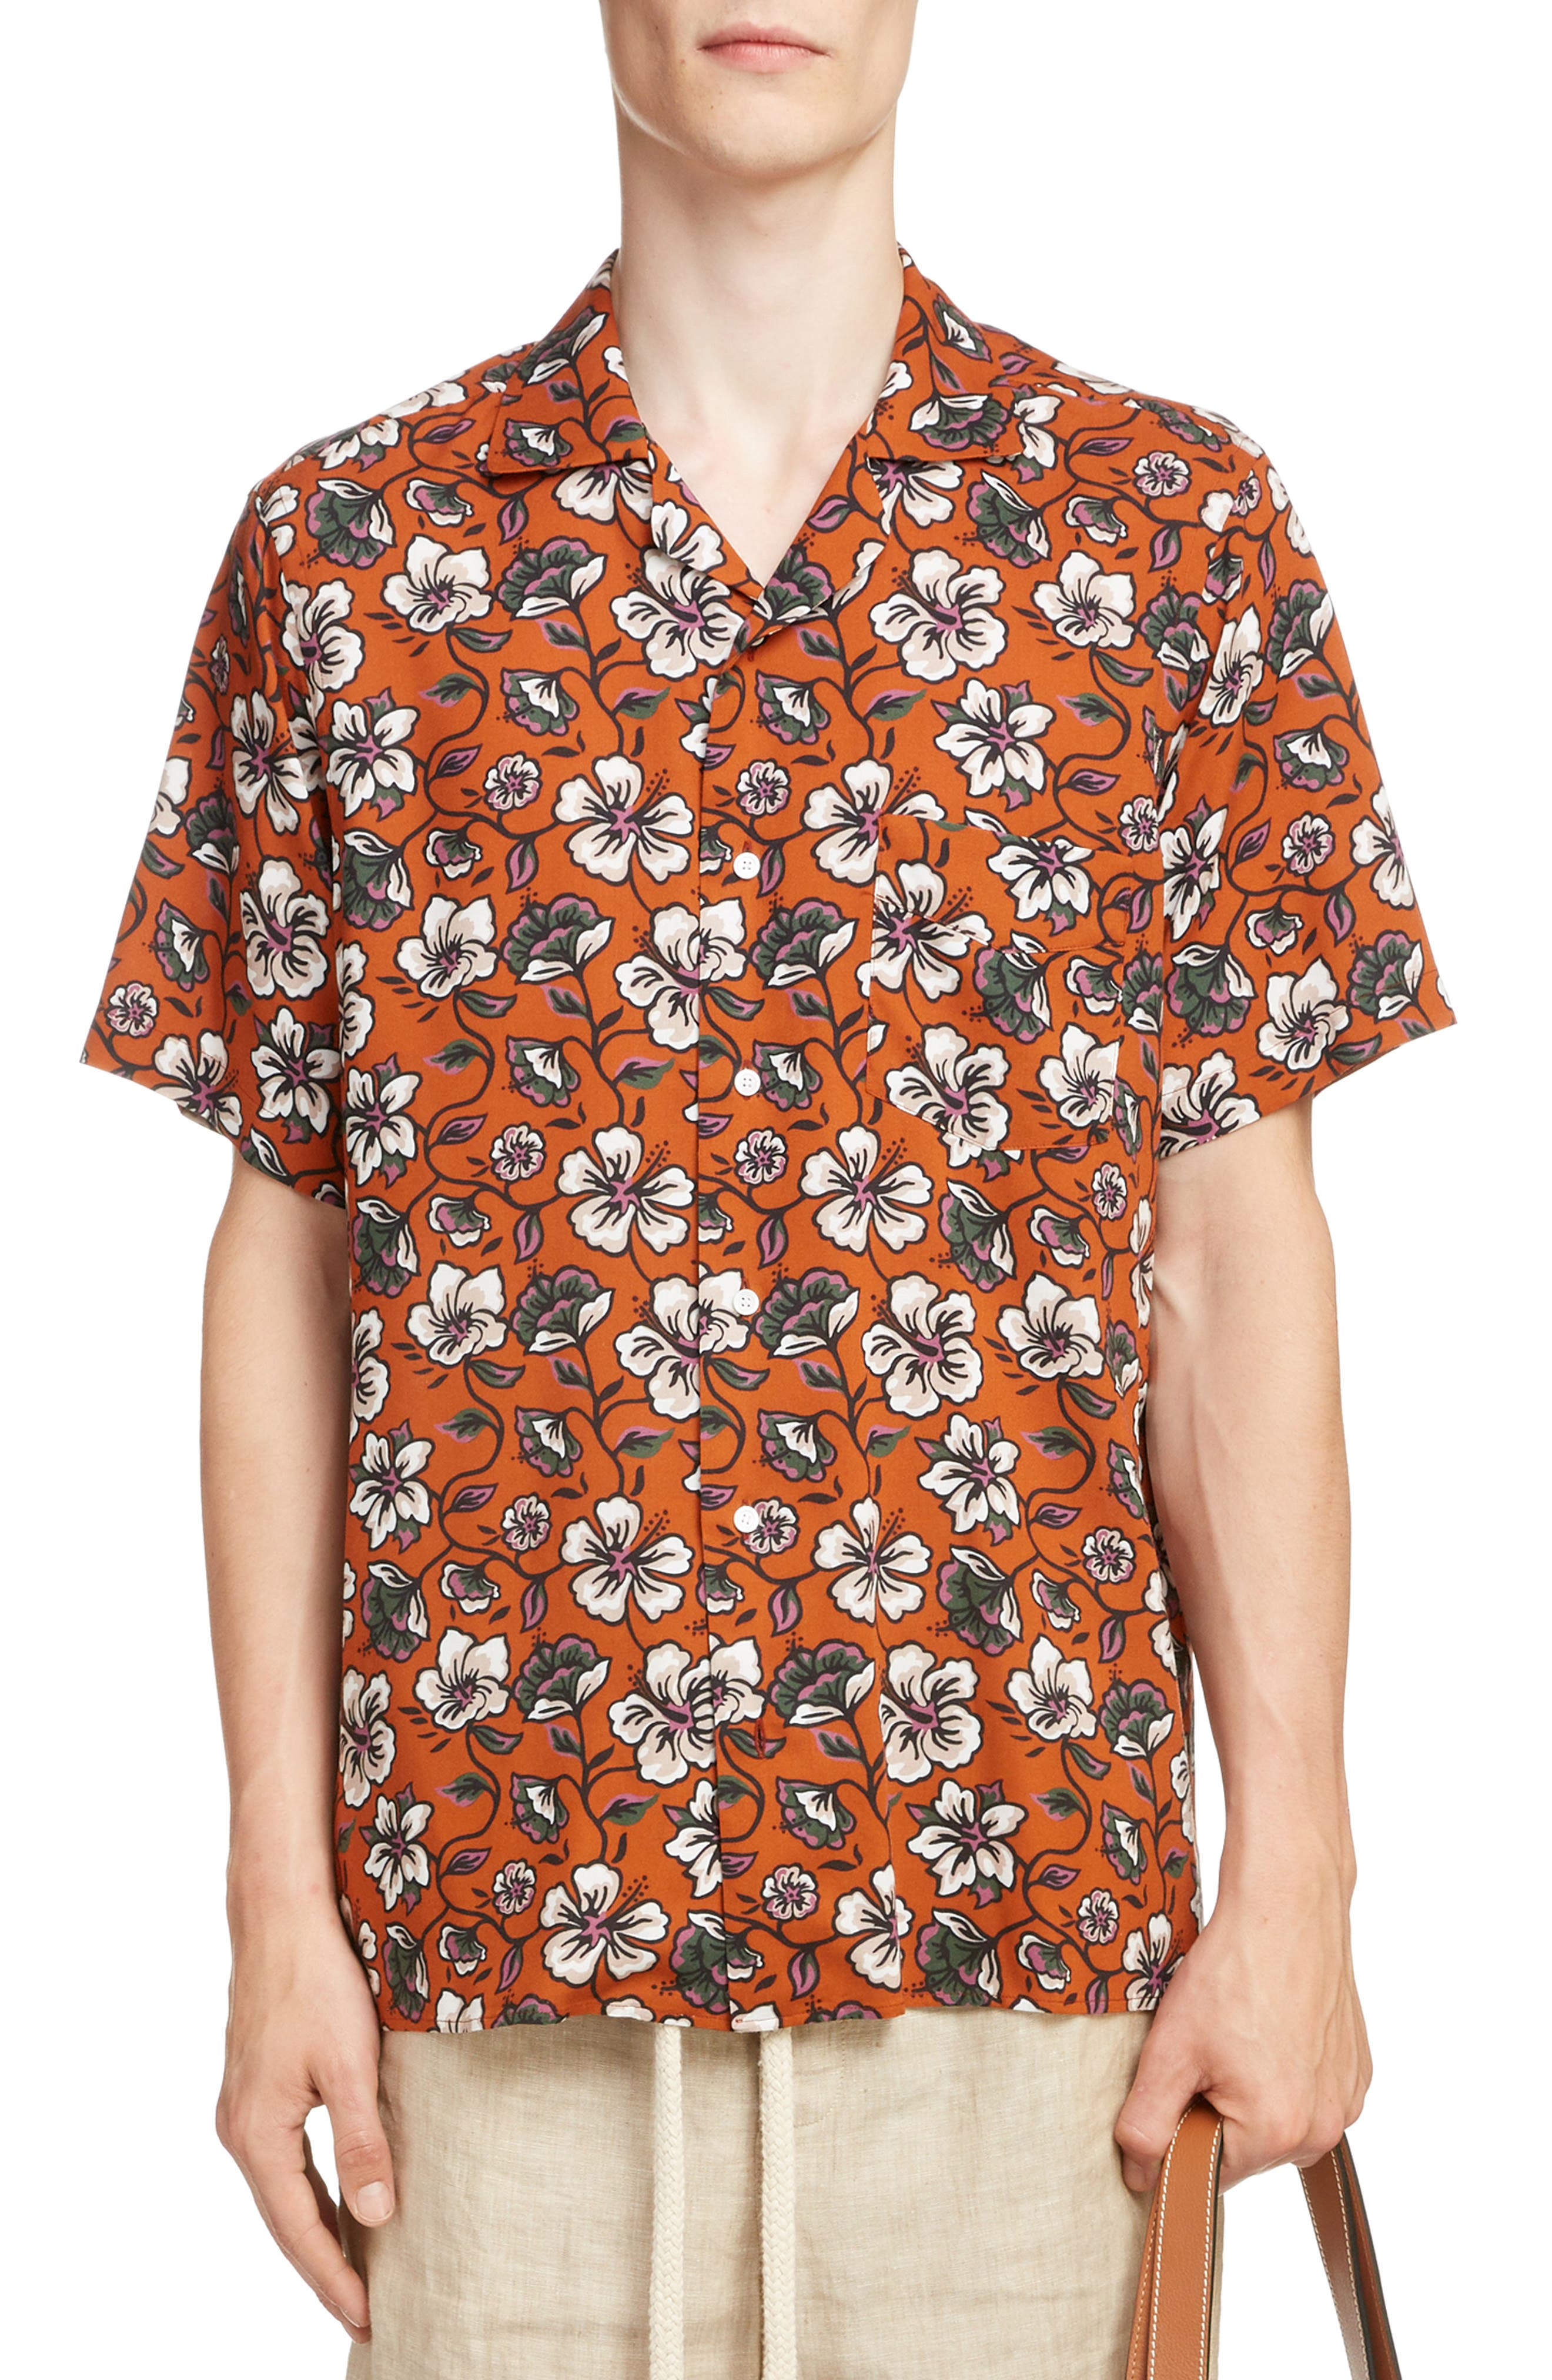 LOEWE Floral Print Camp Shirt, Main, color, 2103-WHITE/ BROWN